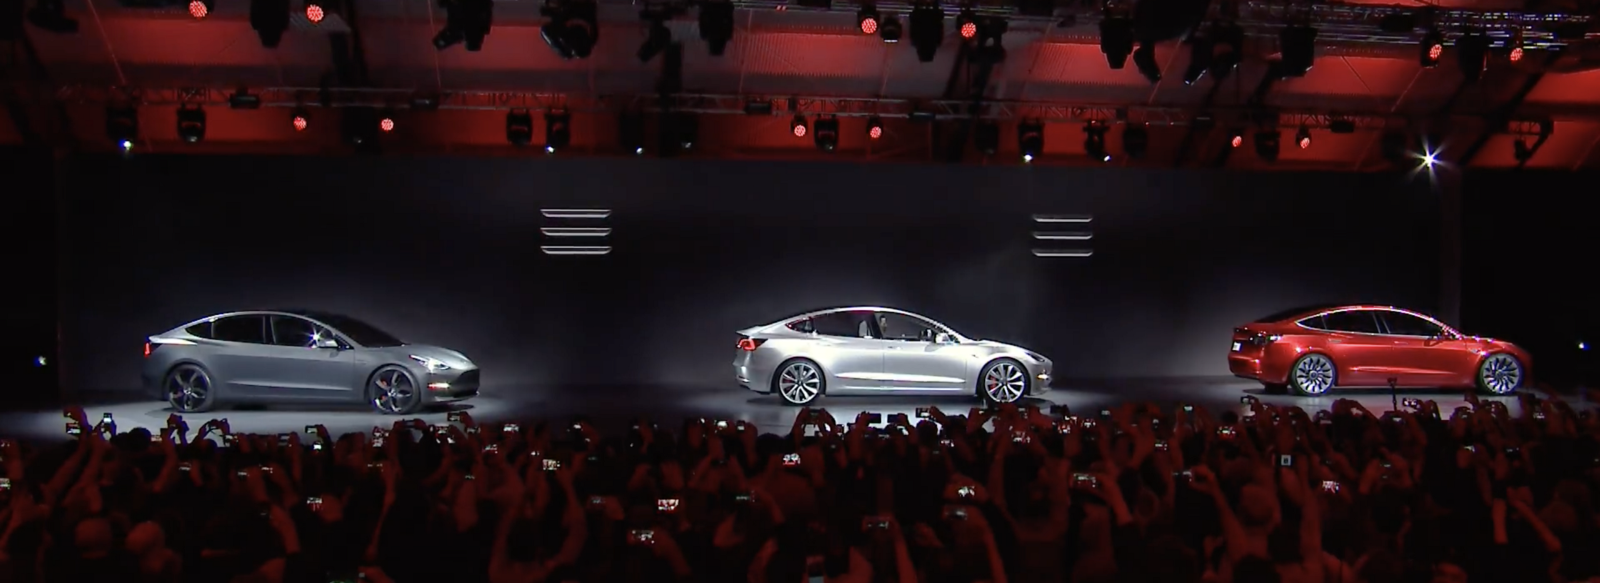 To great applause, three new Tesla Model 3's drive onto the stage